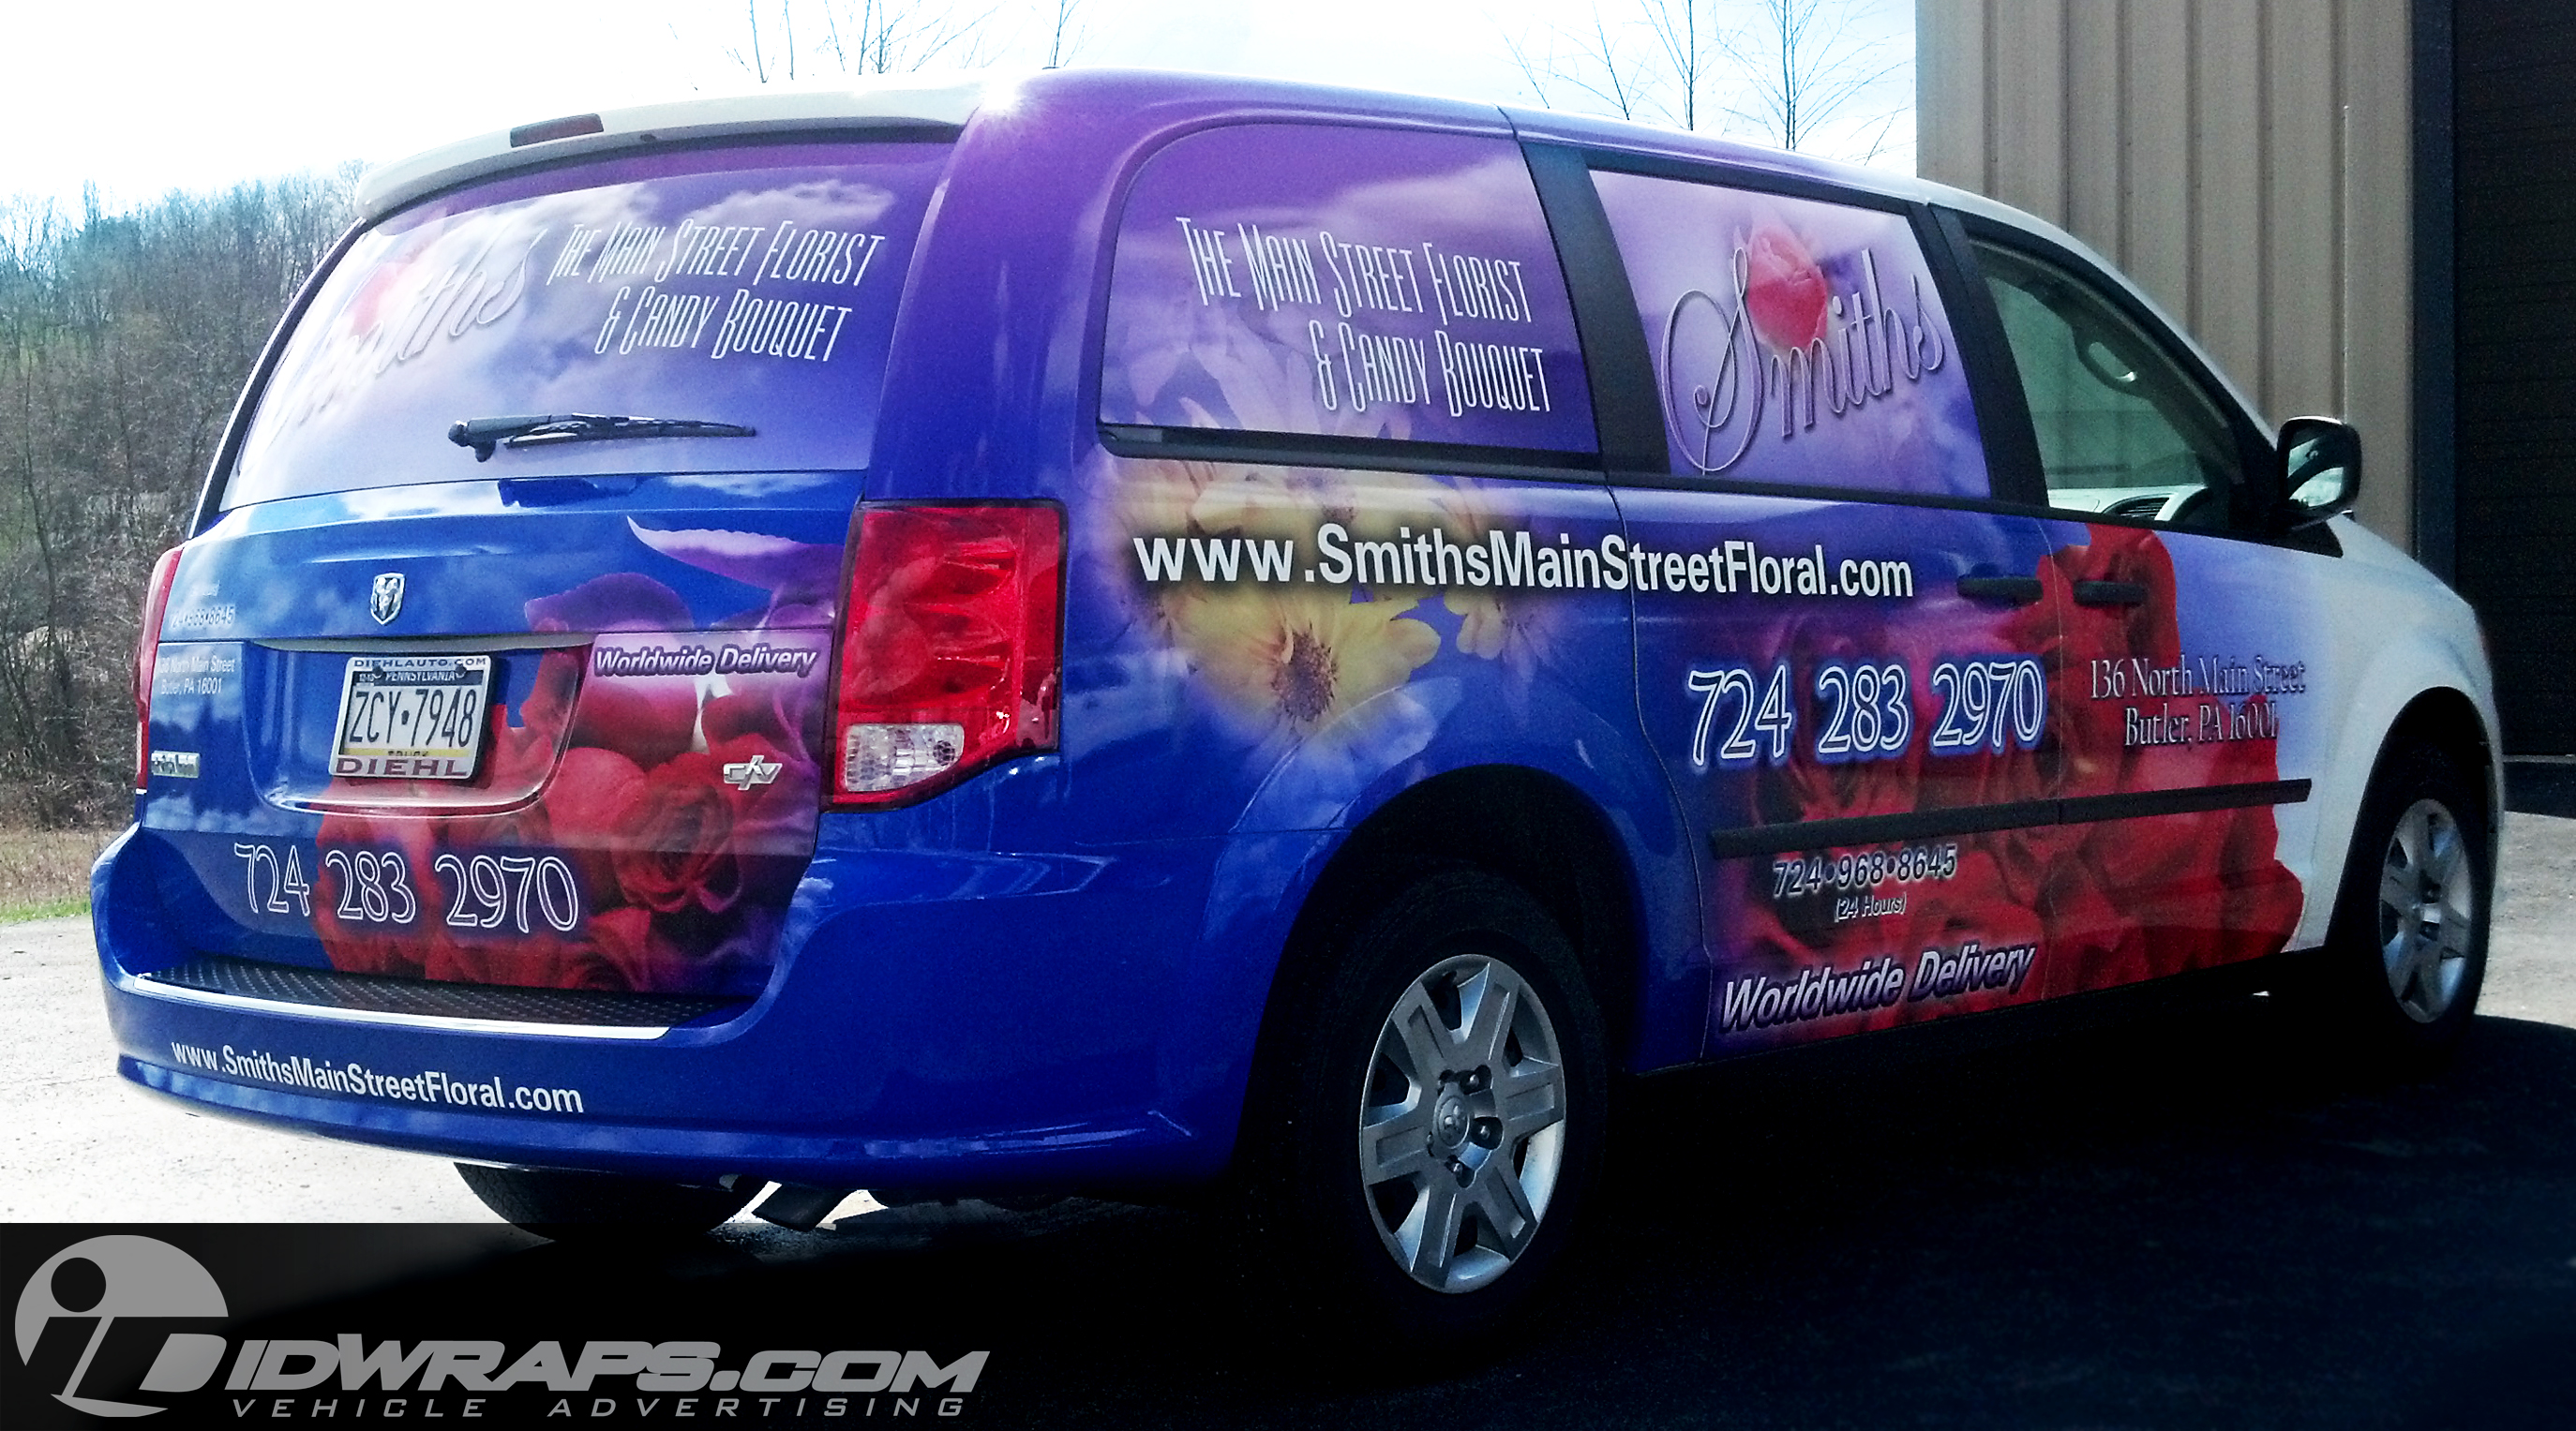 Features 3m Van Car Wrap For Flower Delivery Shop In Butler